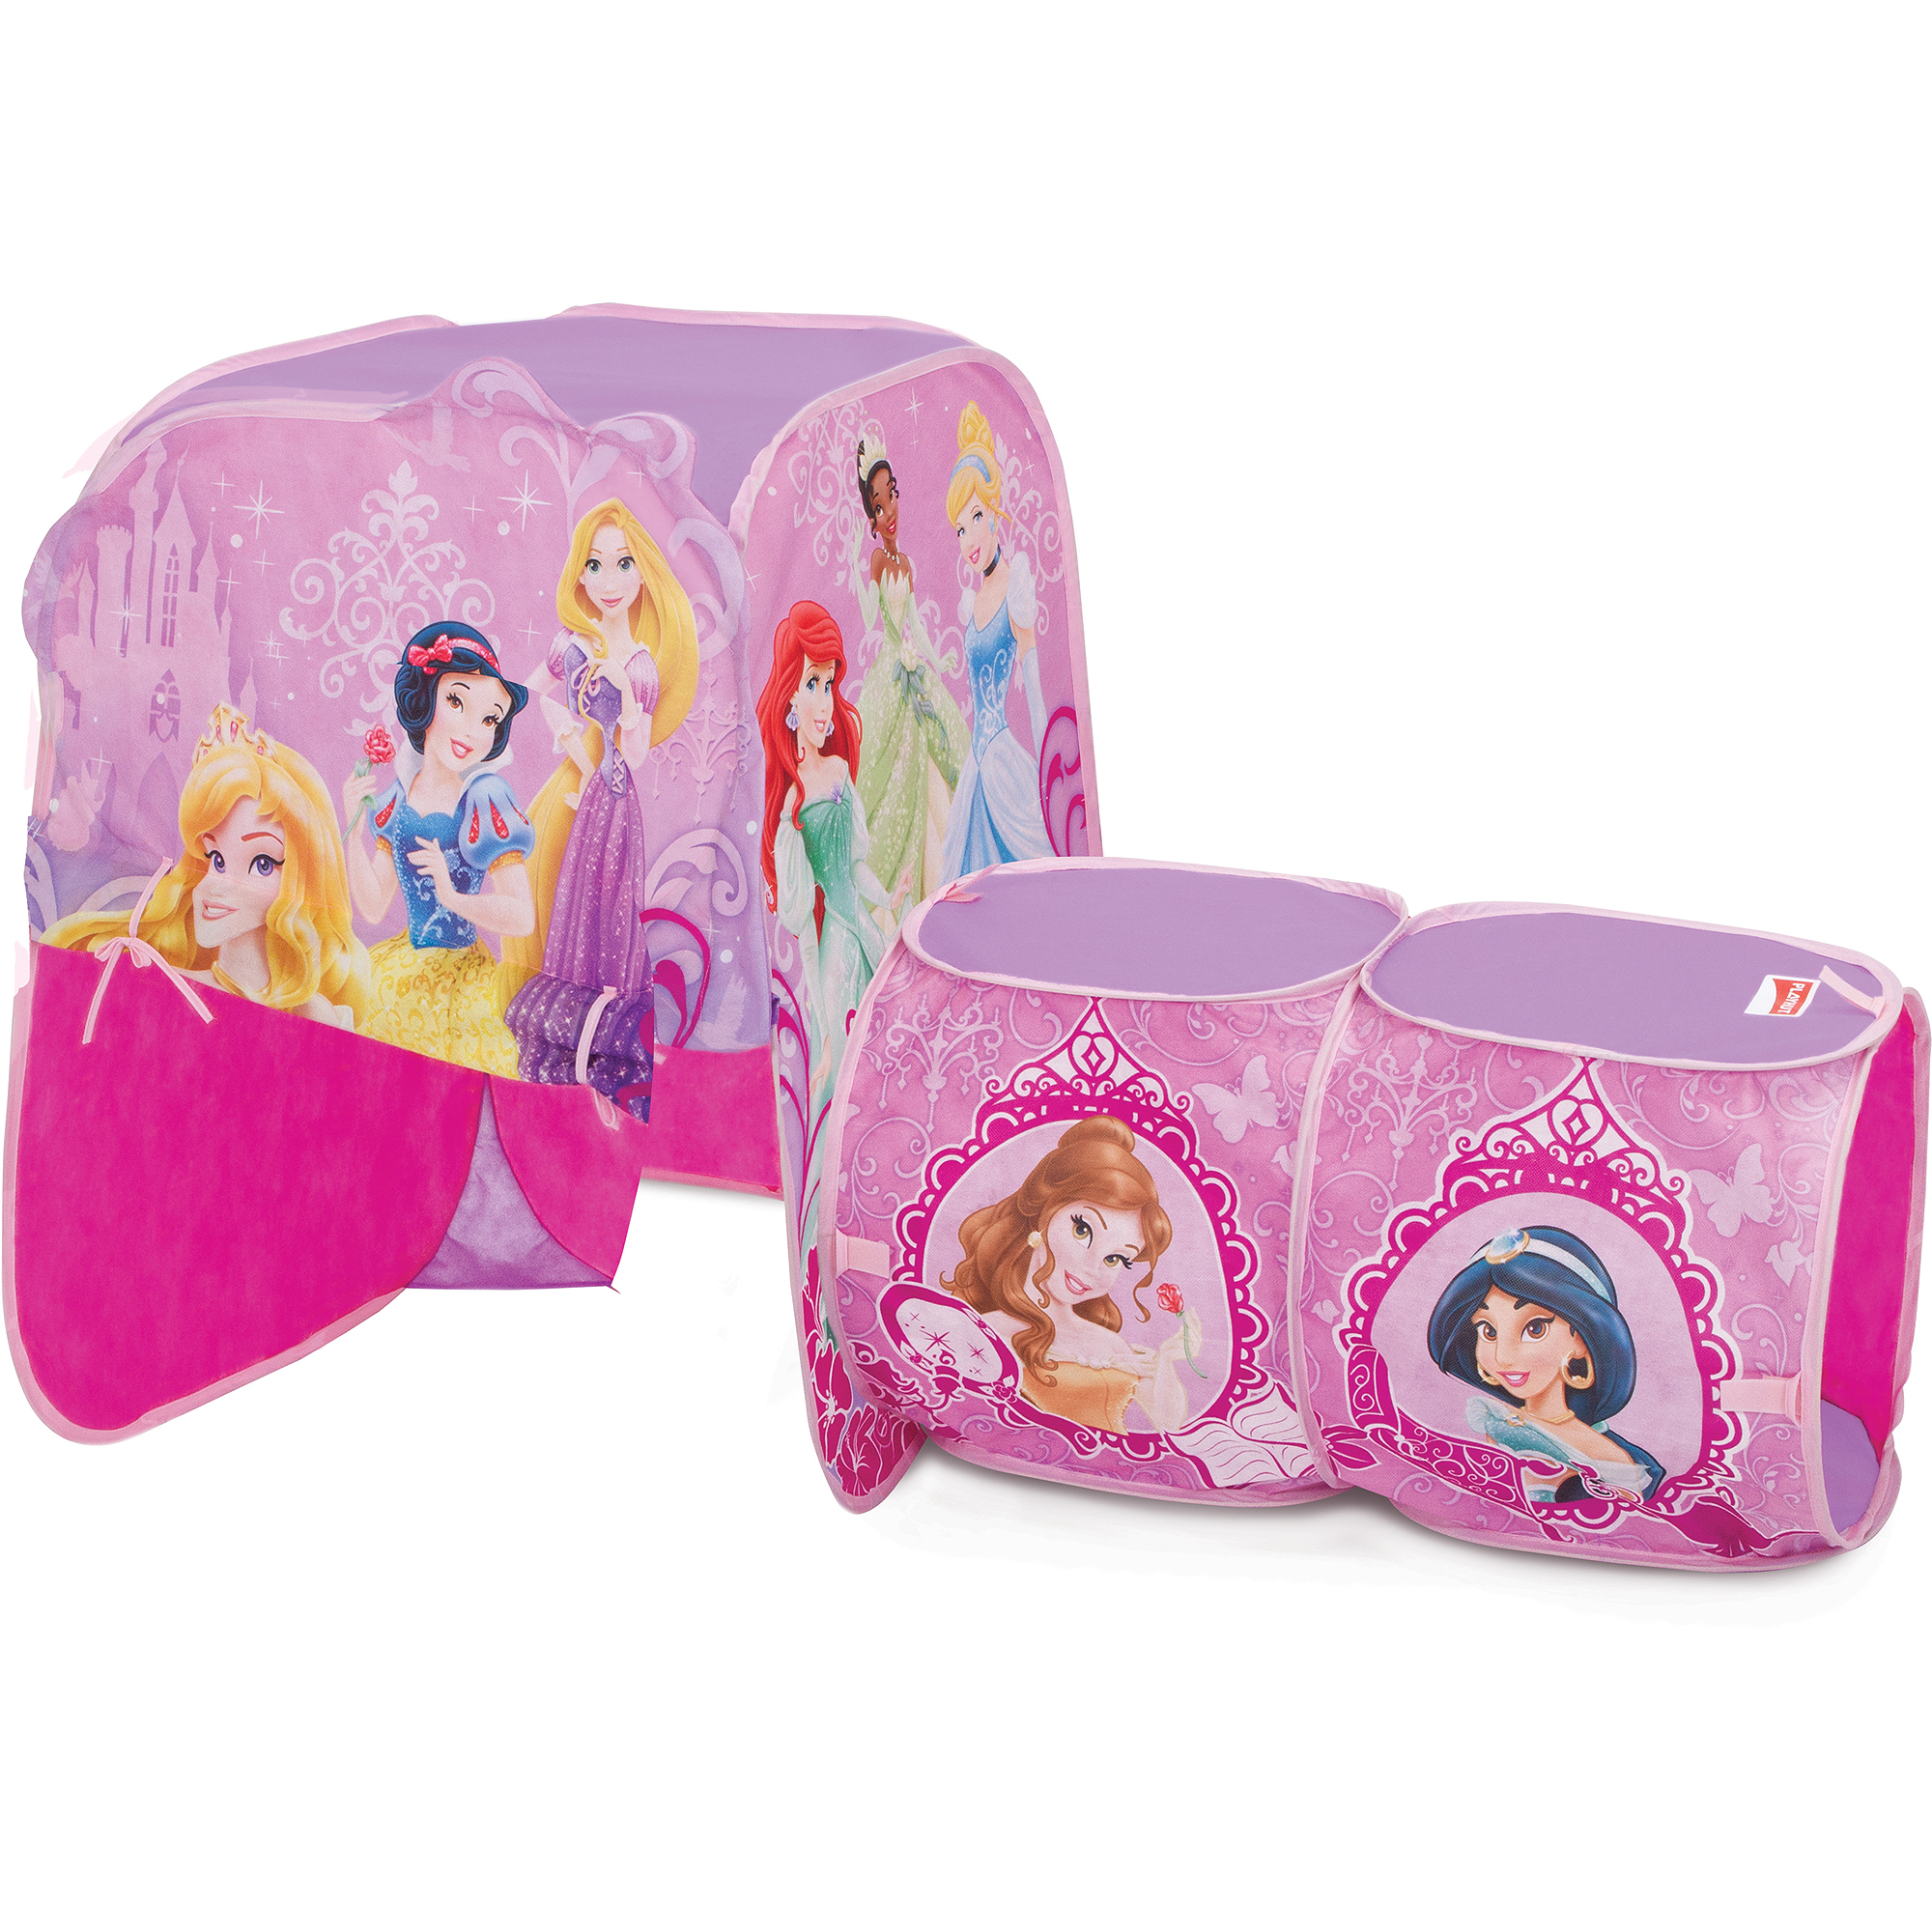 Disney Princess Adventure Hut by Playhut